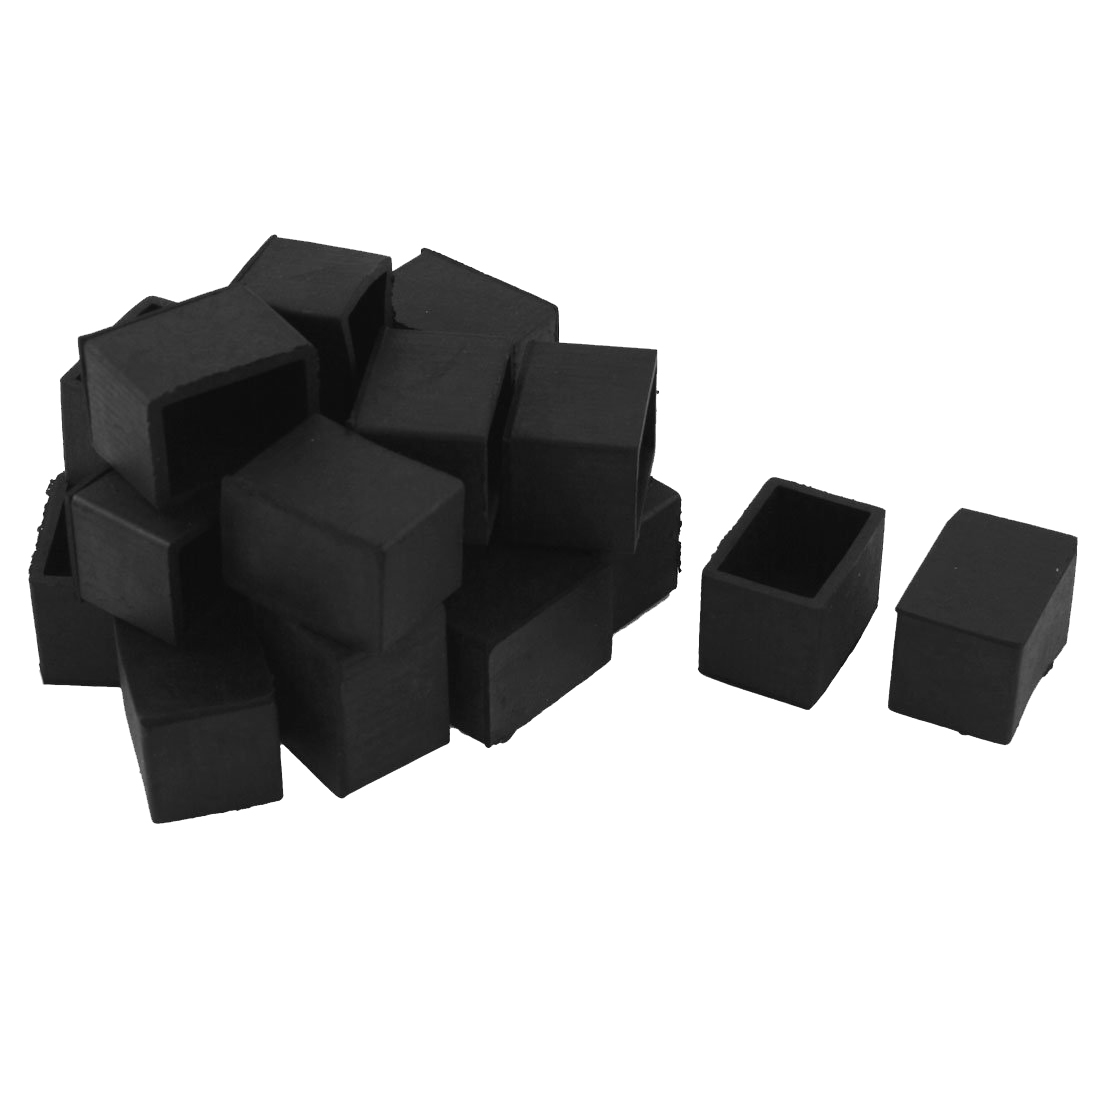 20 Pcs Furniture Table Leg Rubber Foot Covers 20mm x 30mm Black rubber round table foot cover protector 8mm inner dia 24 pcs